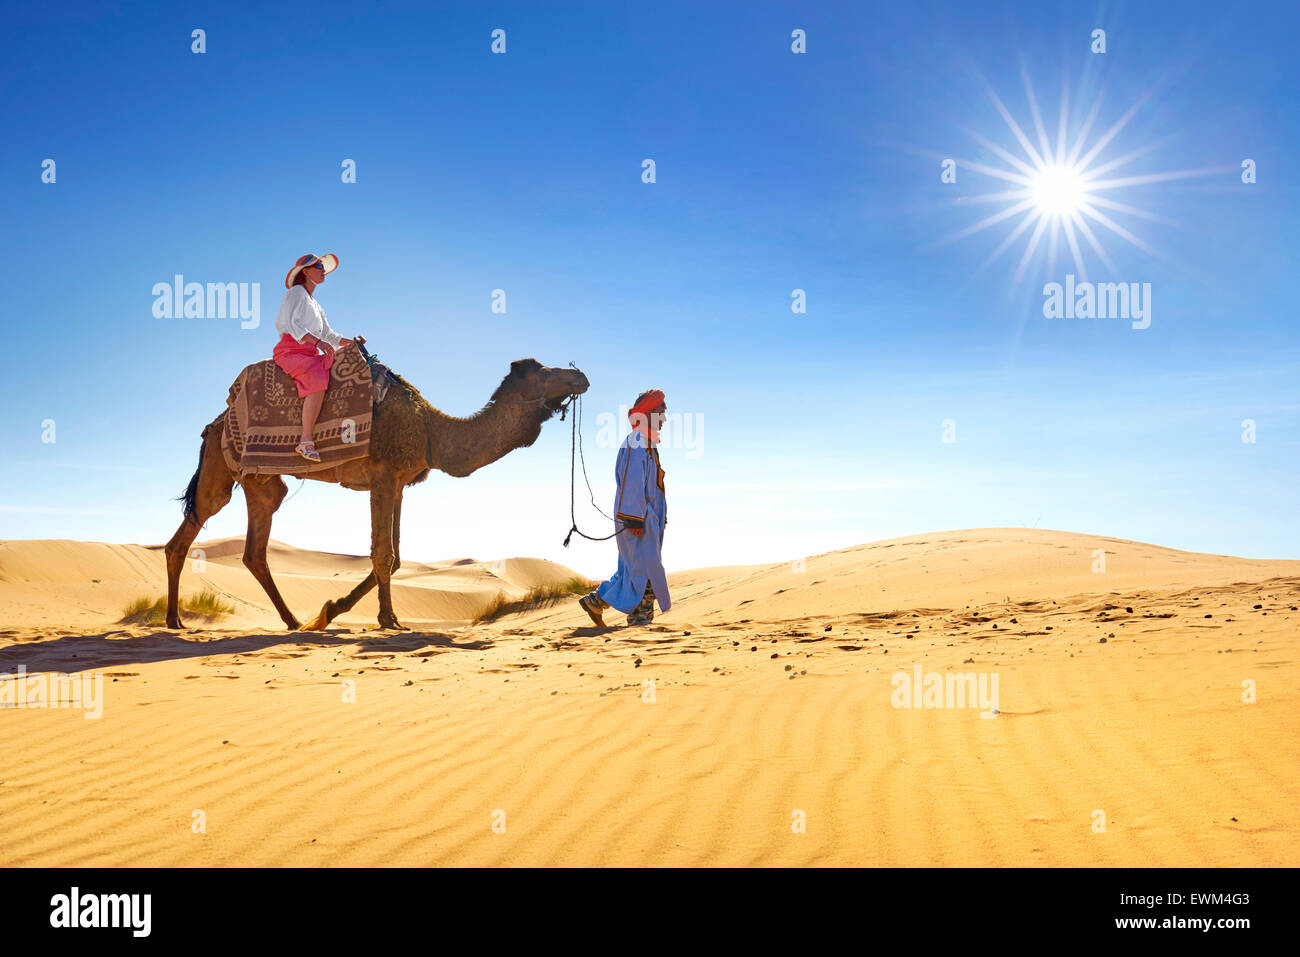 Tourist on camel ride, Erg Chebbi desert near Merzouga, Sahara, Morocco - Stock Image